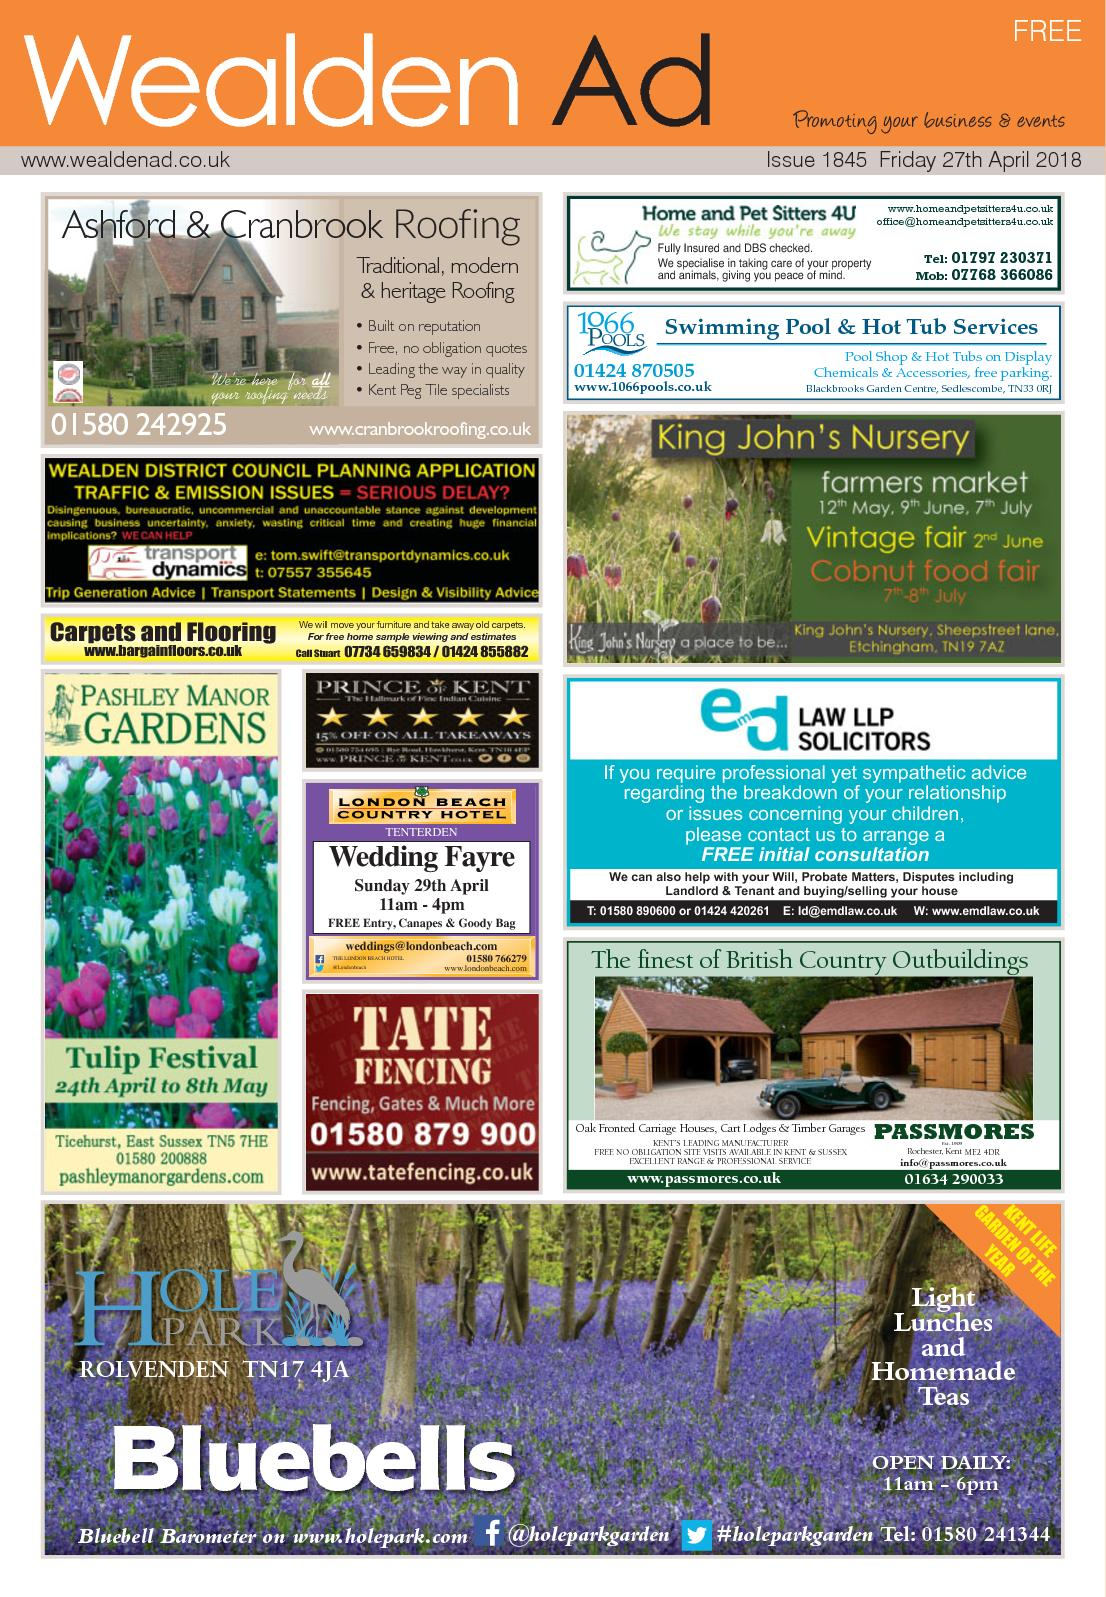 Calaméo - Wealden Ad 27/4/2018